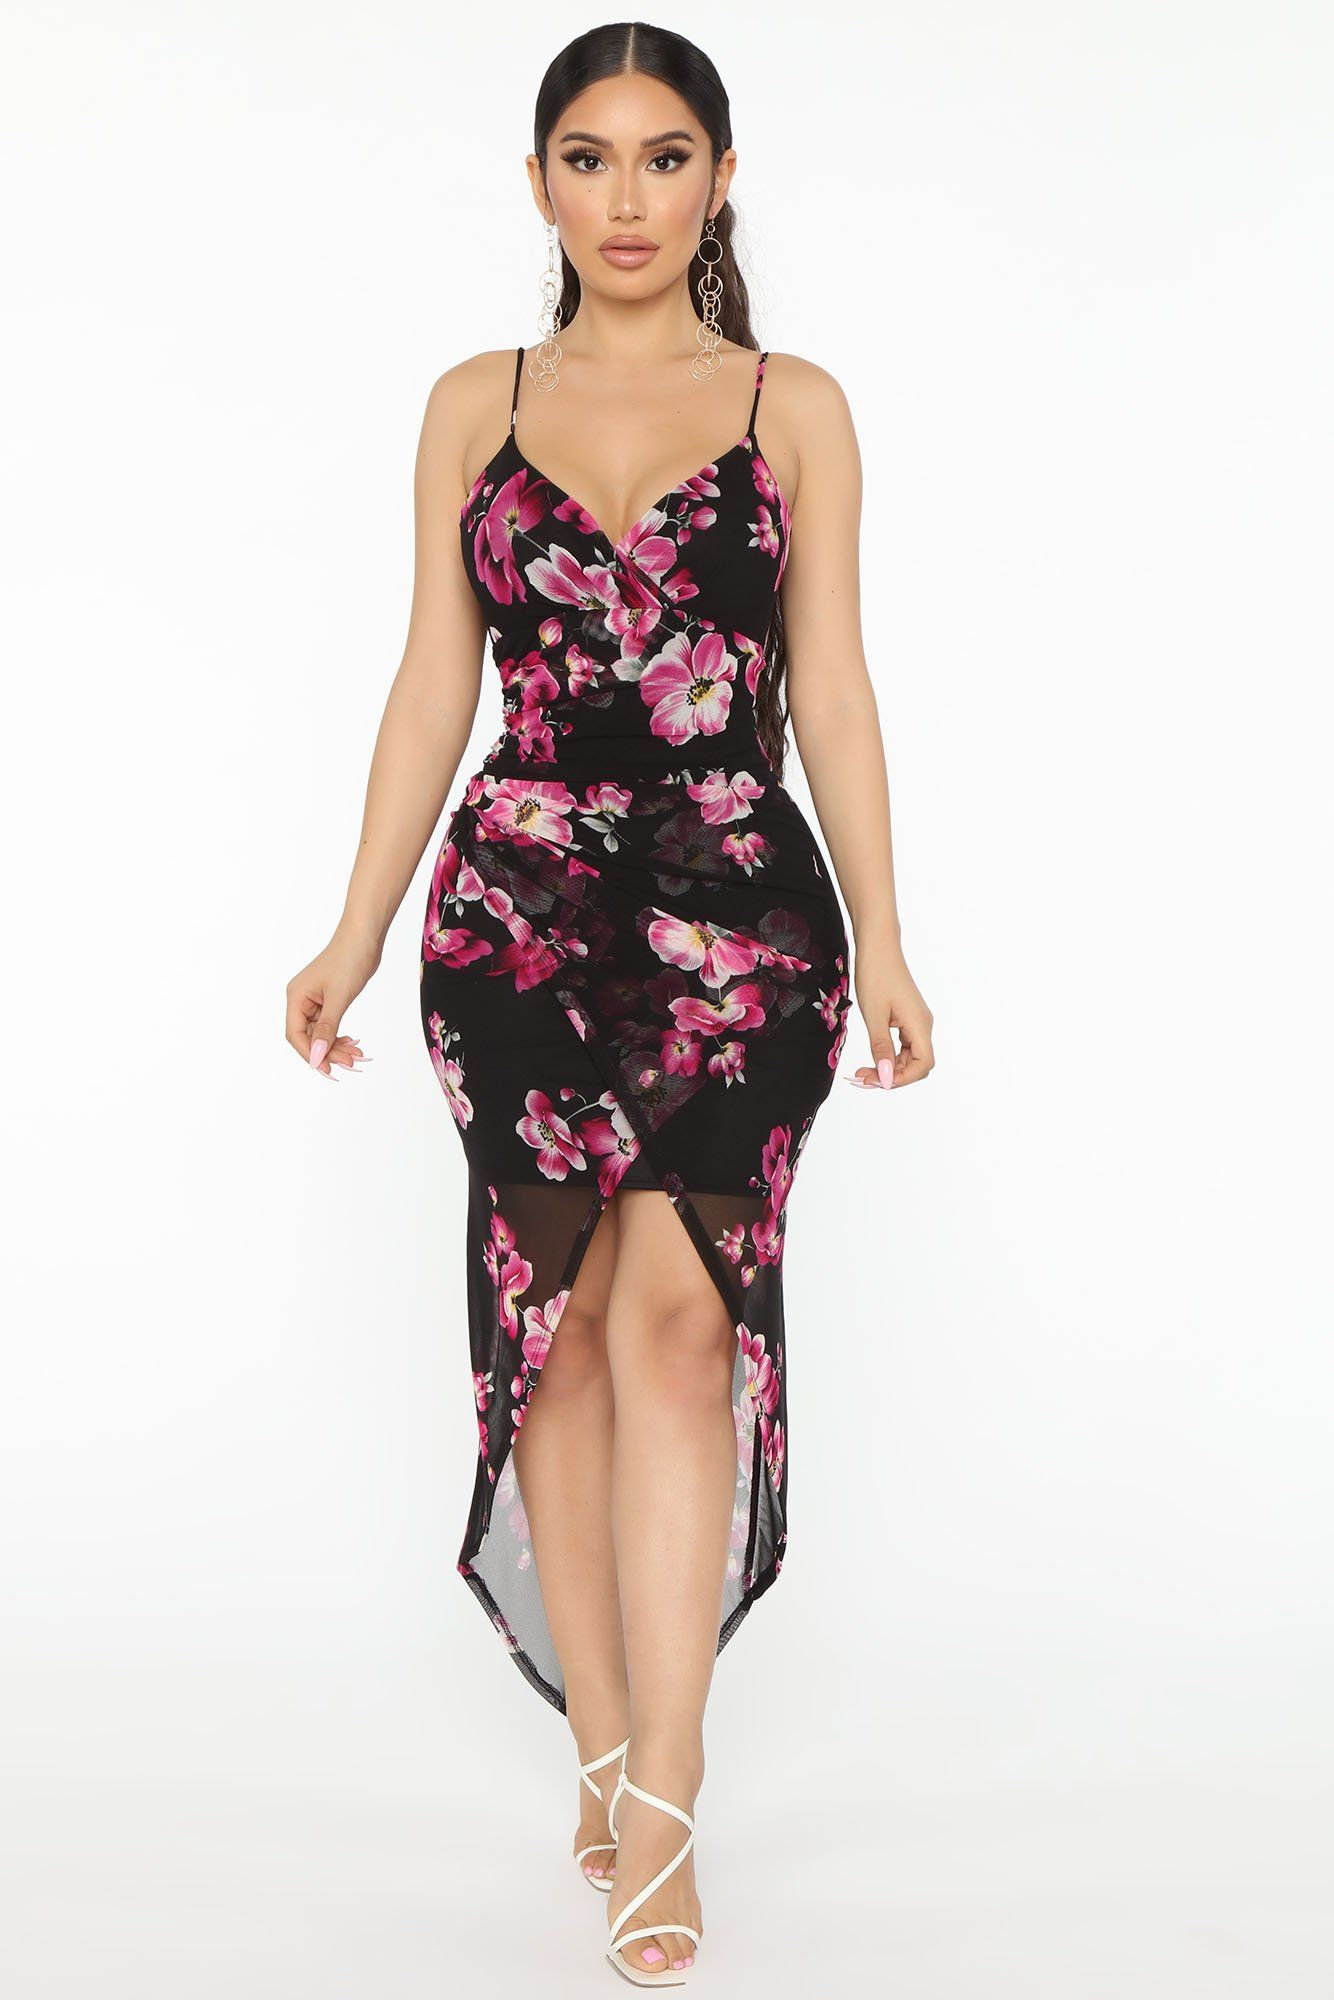 Feel Me Floral Mesh Maxi Dress in 2020